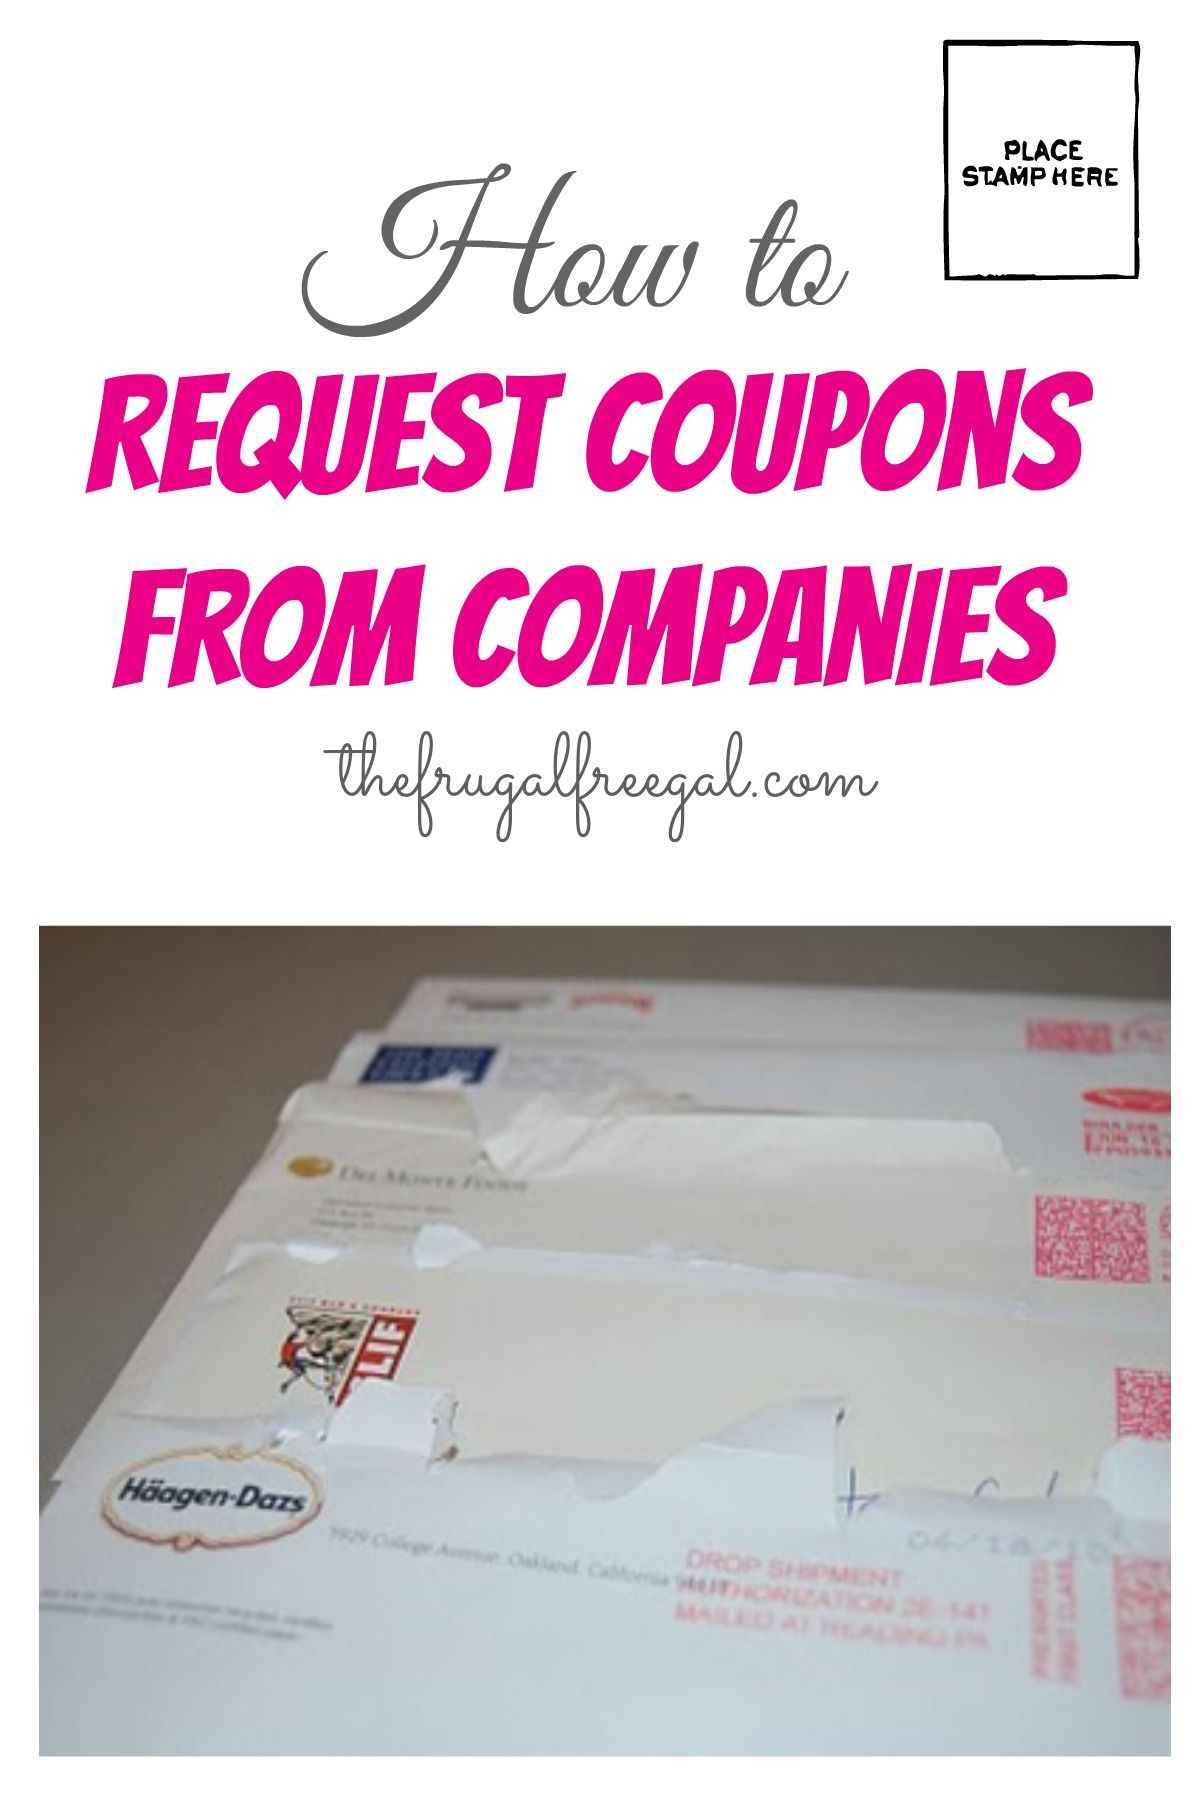 Coupon master clipping service - Coupons